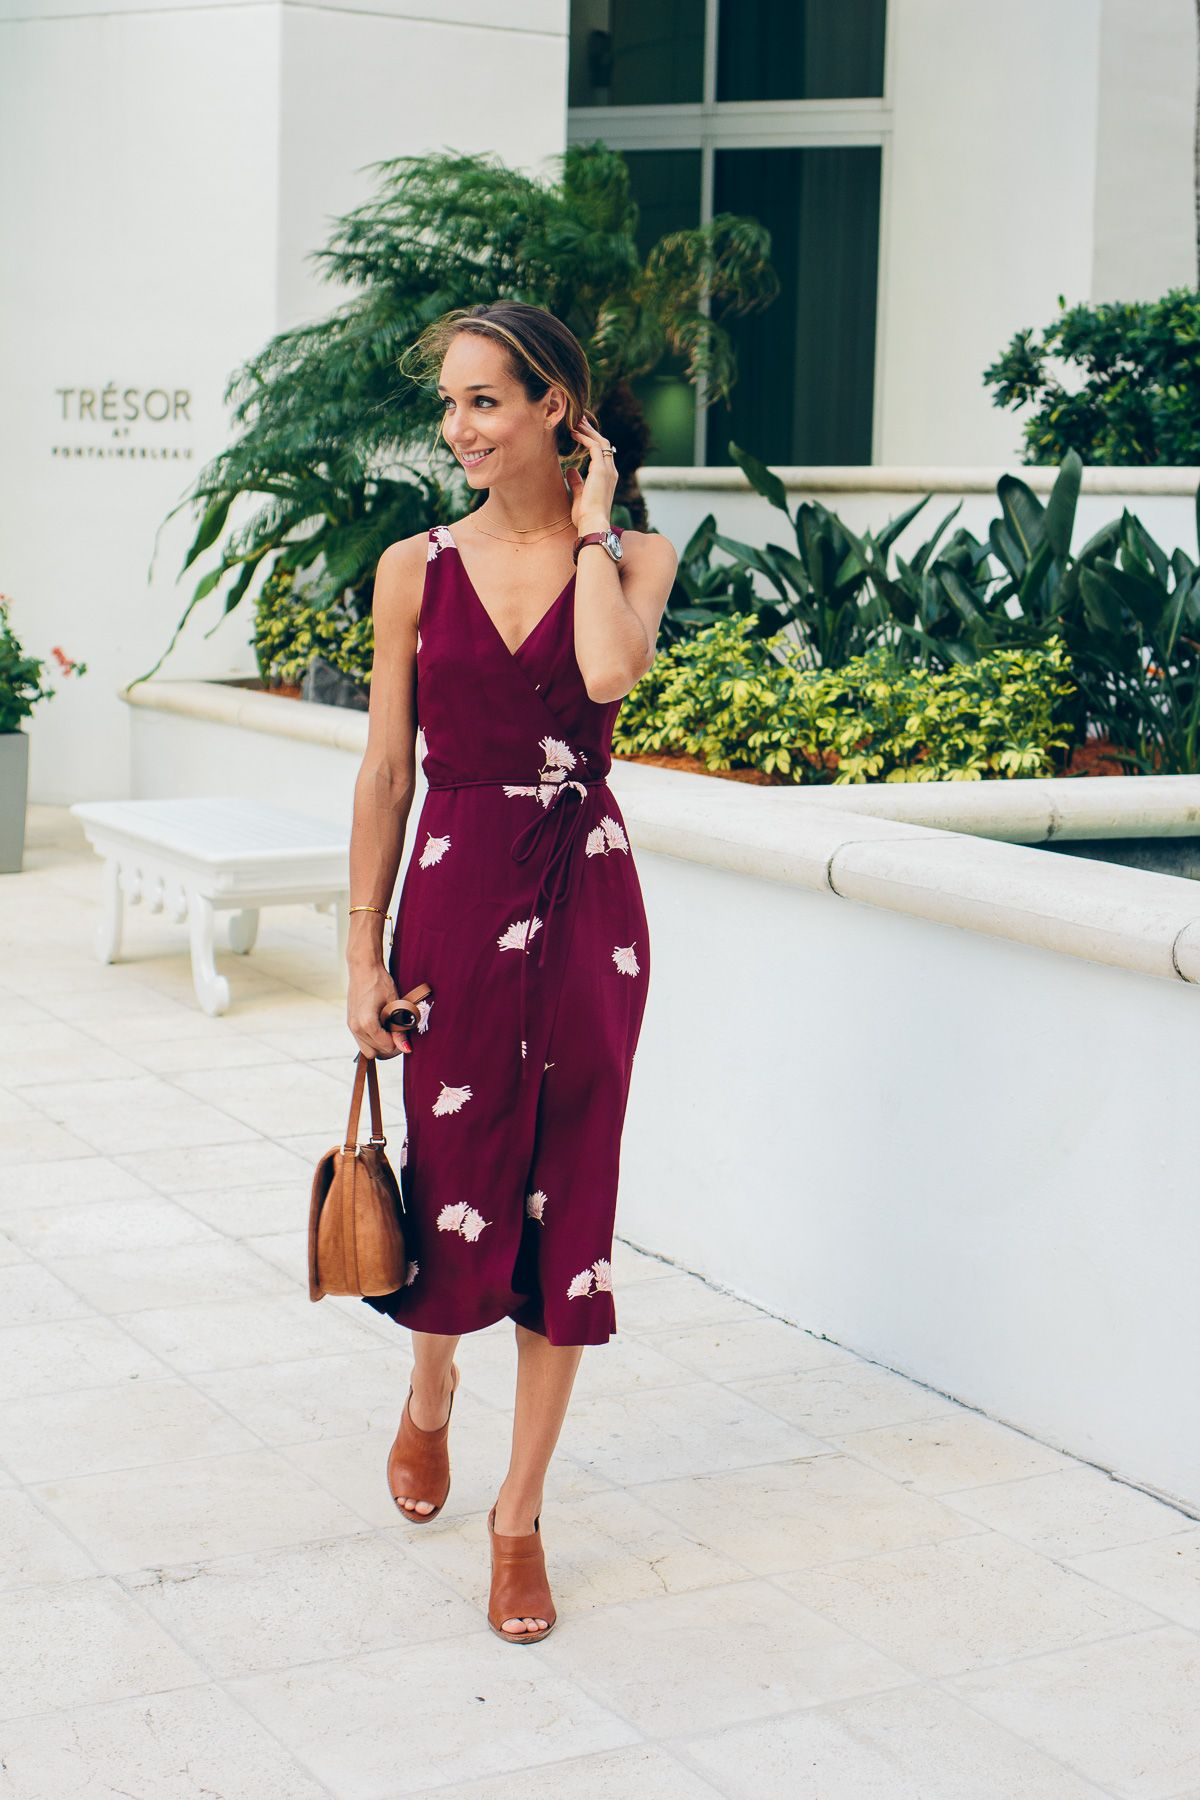 How To Wear A Wrap Dress The Fox She Chicago Style Blogger Womens Dresses Fashion Summer Dresses [ 1800 x 1200 Pixel ]